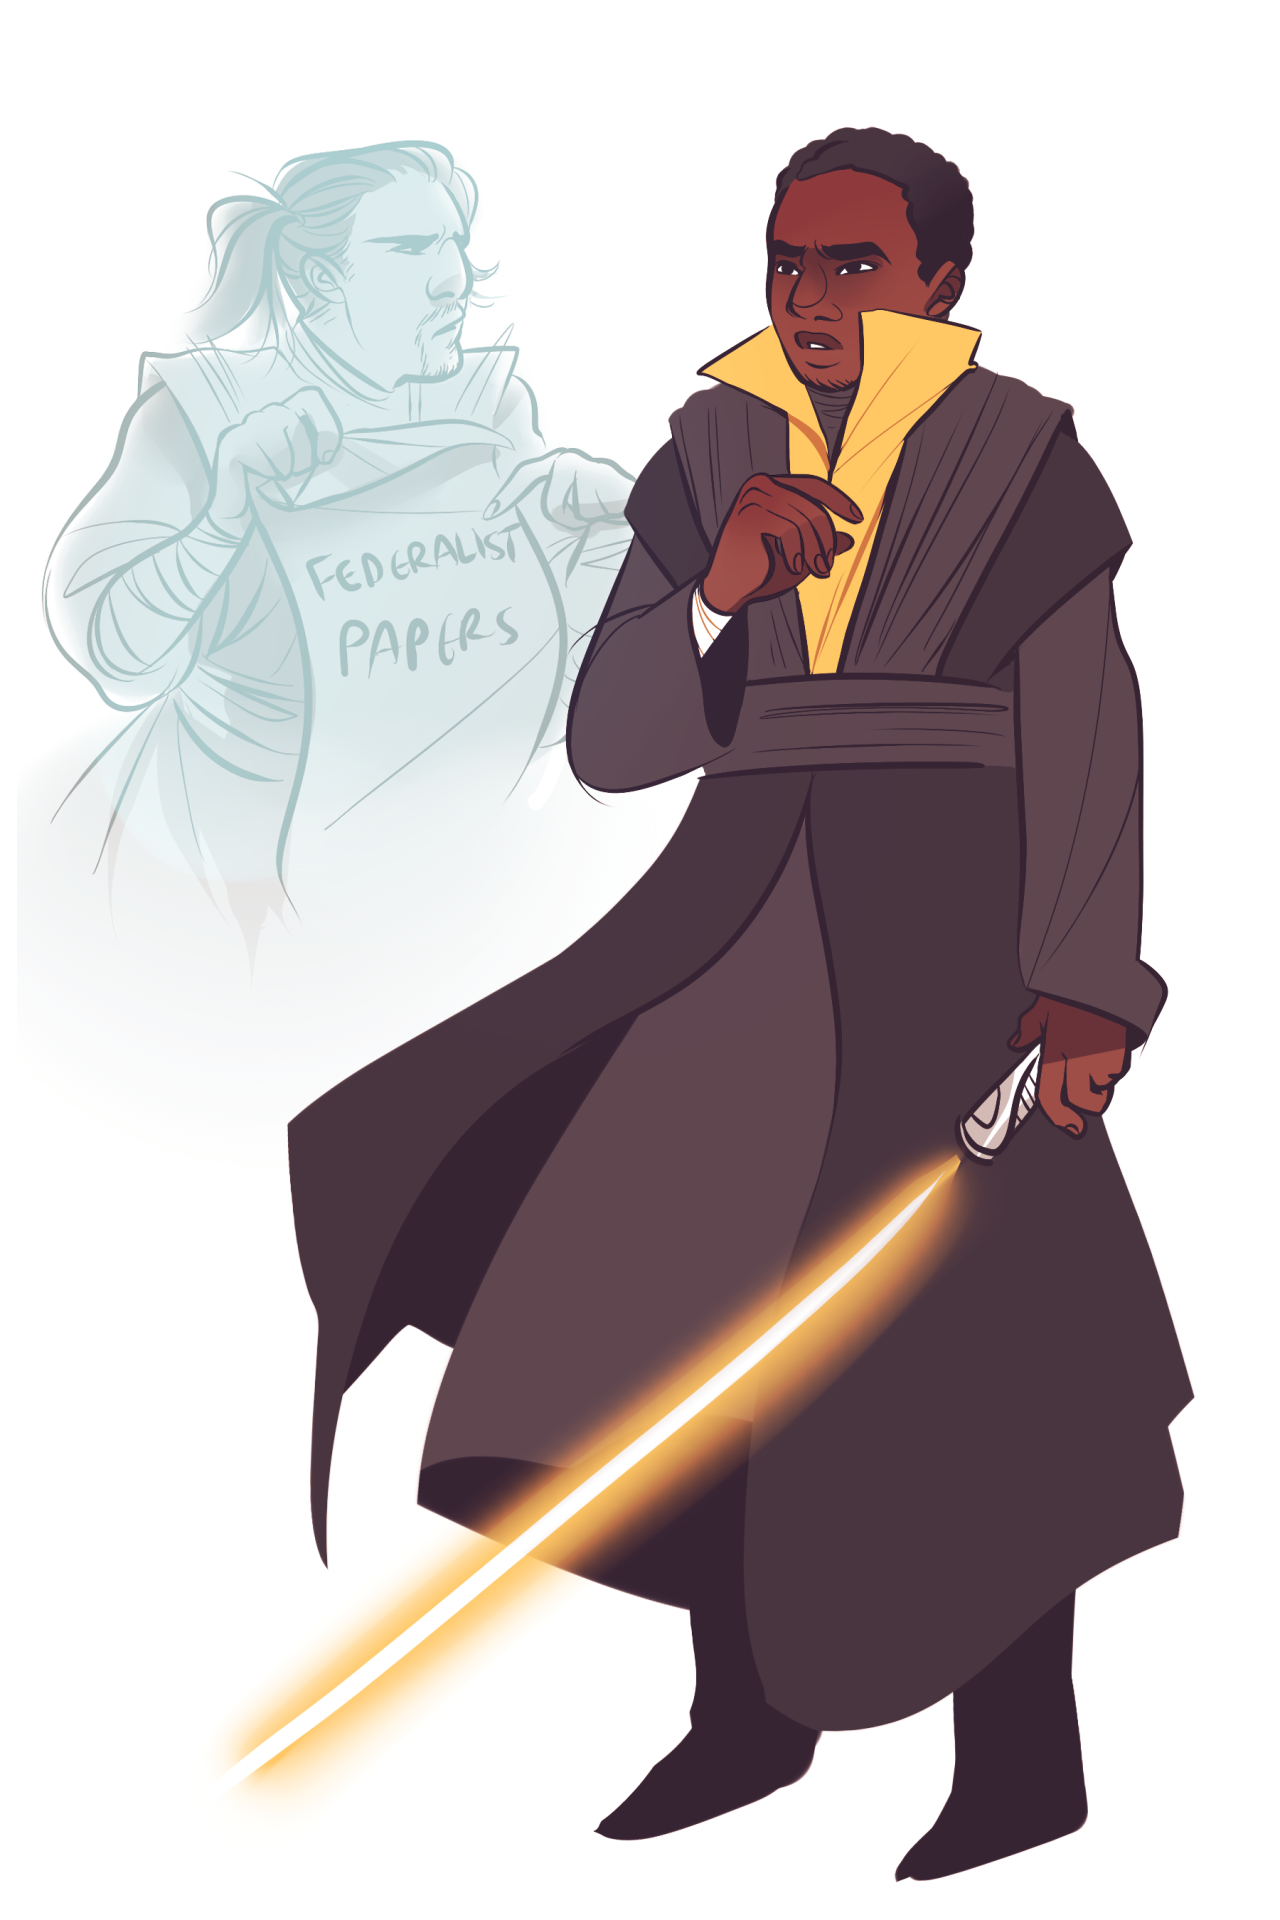 james madison hamilton x star wars by tterpp on tumblr james madison hamilton x star wars by 0tterp0p on tumblr correction this one